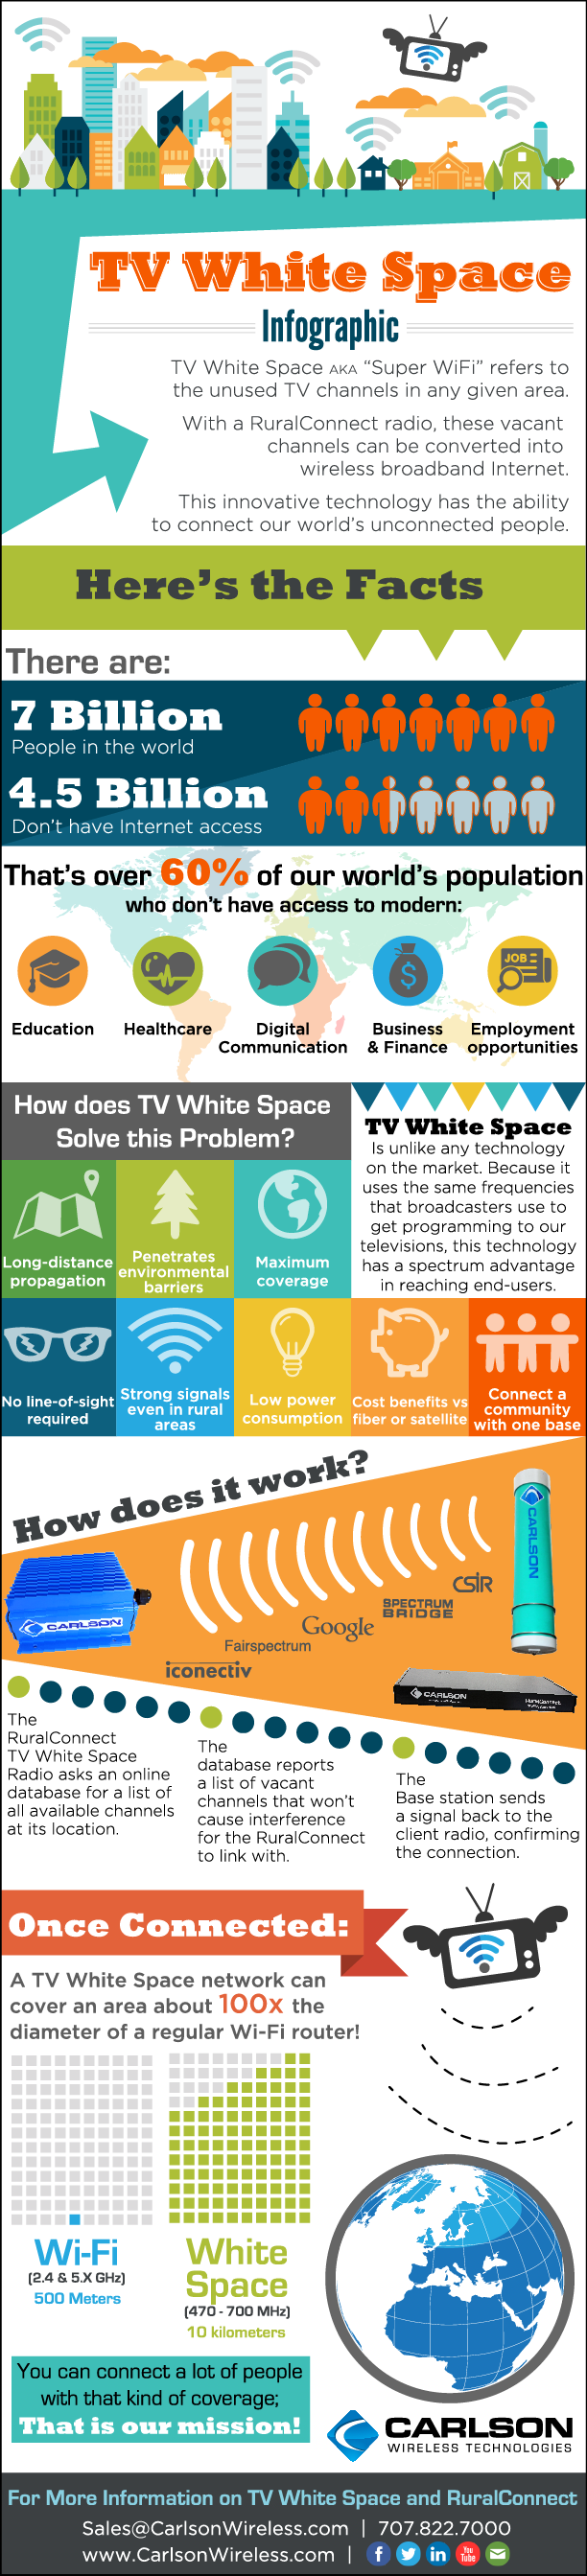 TV White Space Infographic